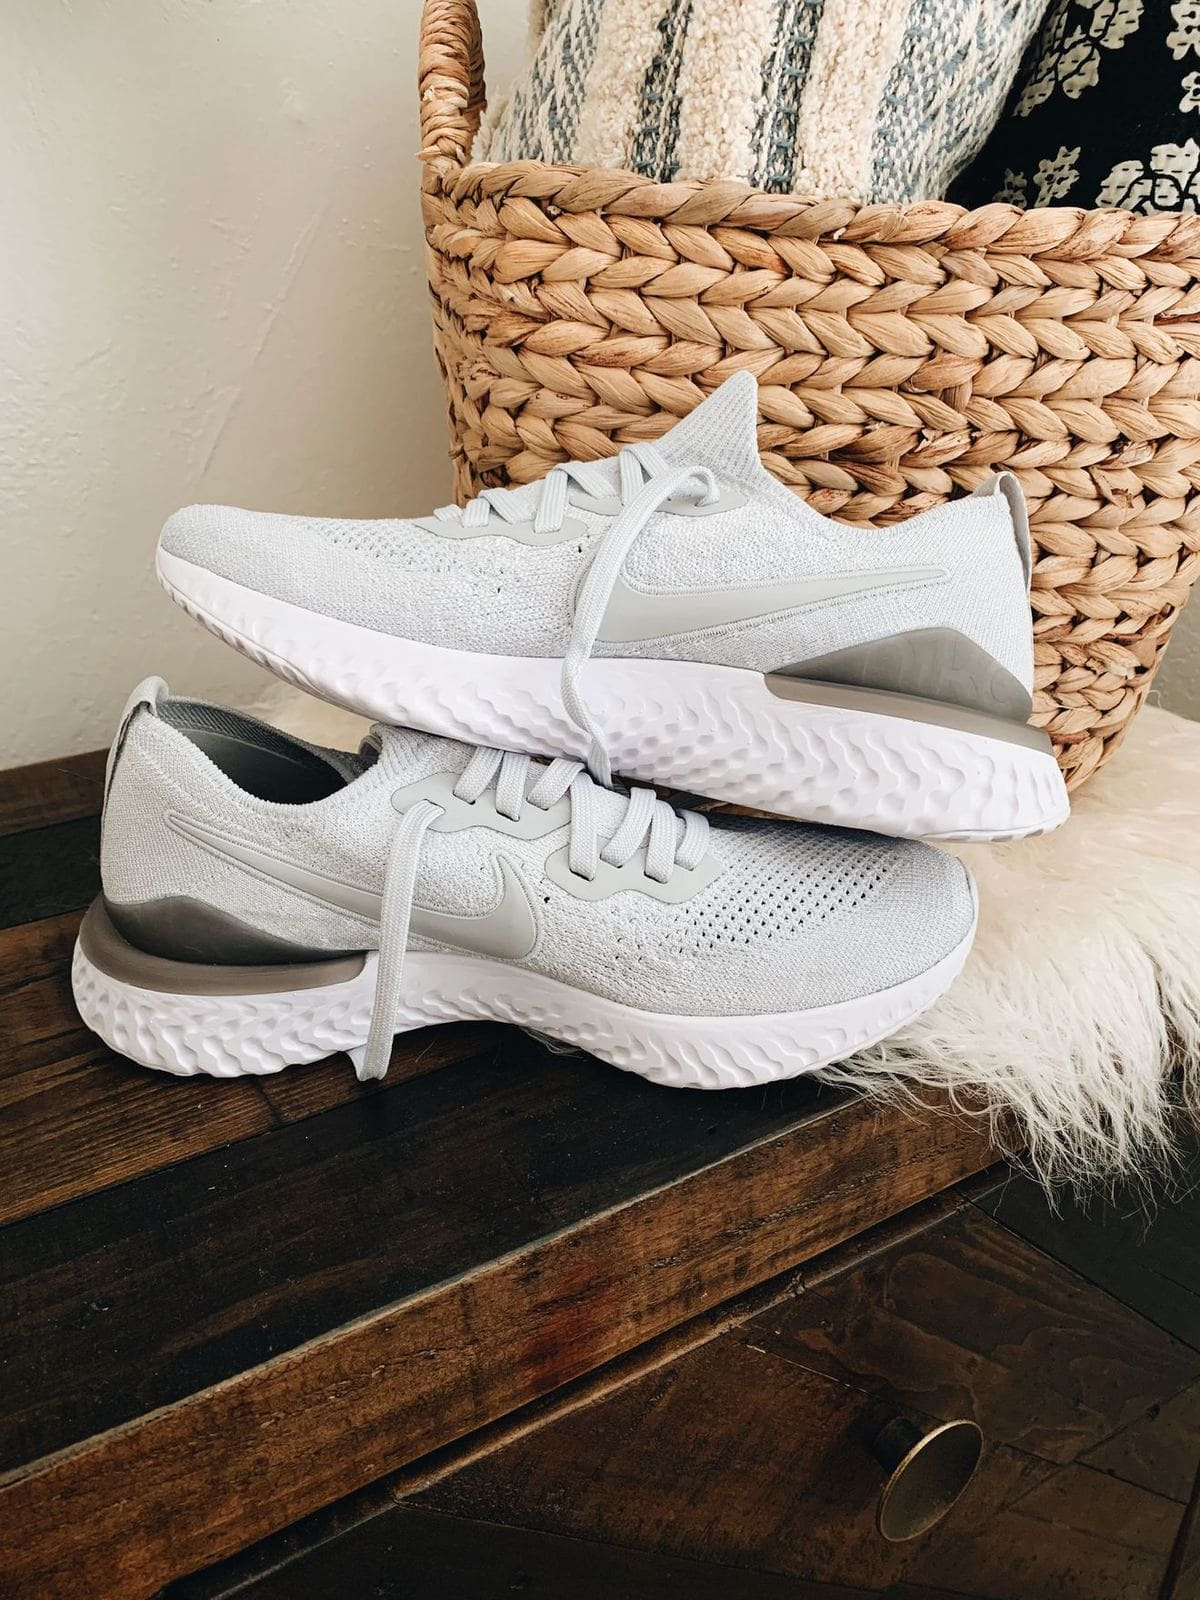 Nike Flyknit Frees nordstrom anniversary sale 2019